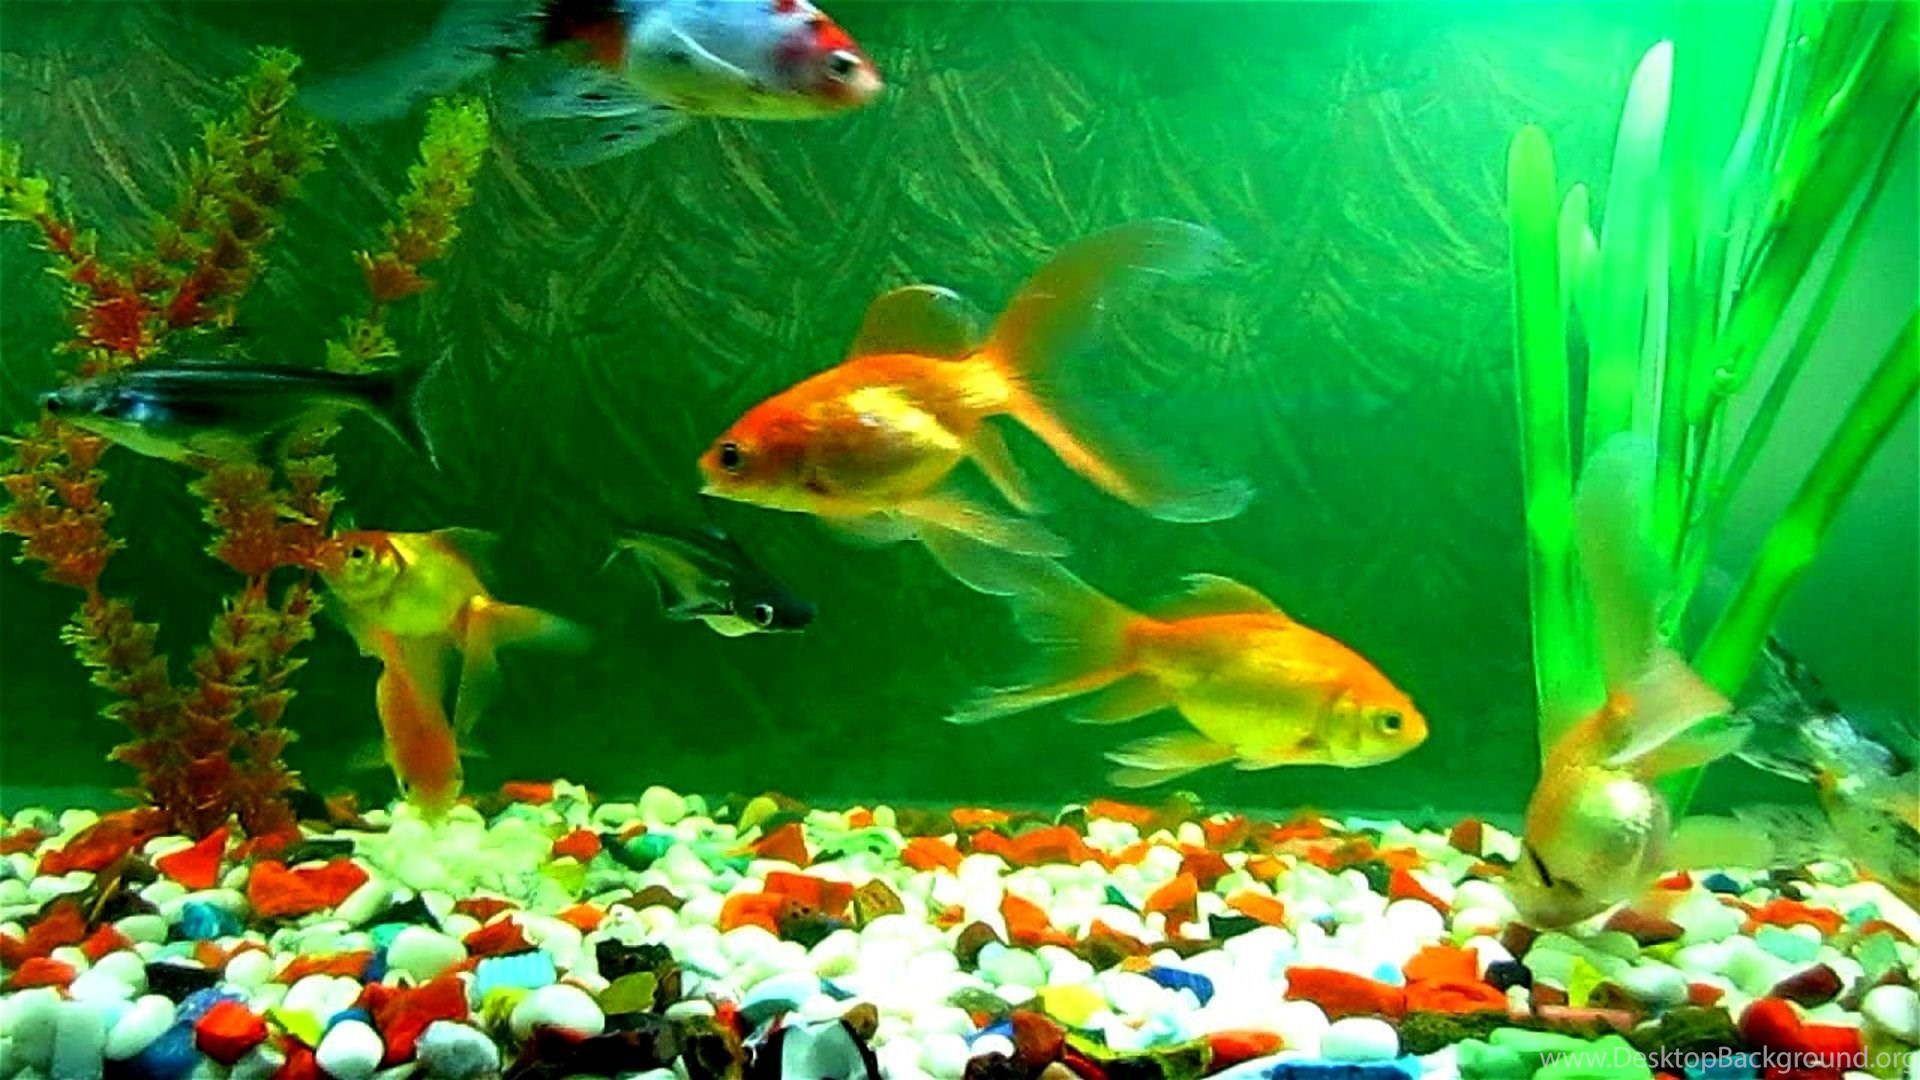 Reduce Stress By Viewing Colorful Fish Tank Backgrounds Pictures ...